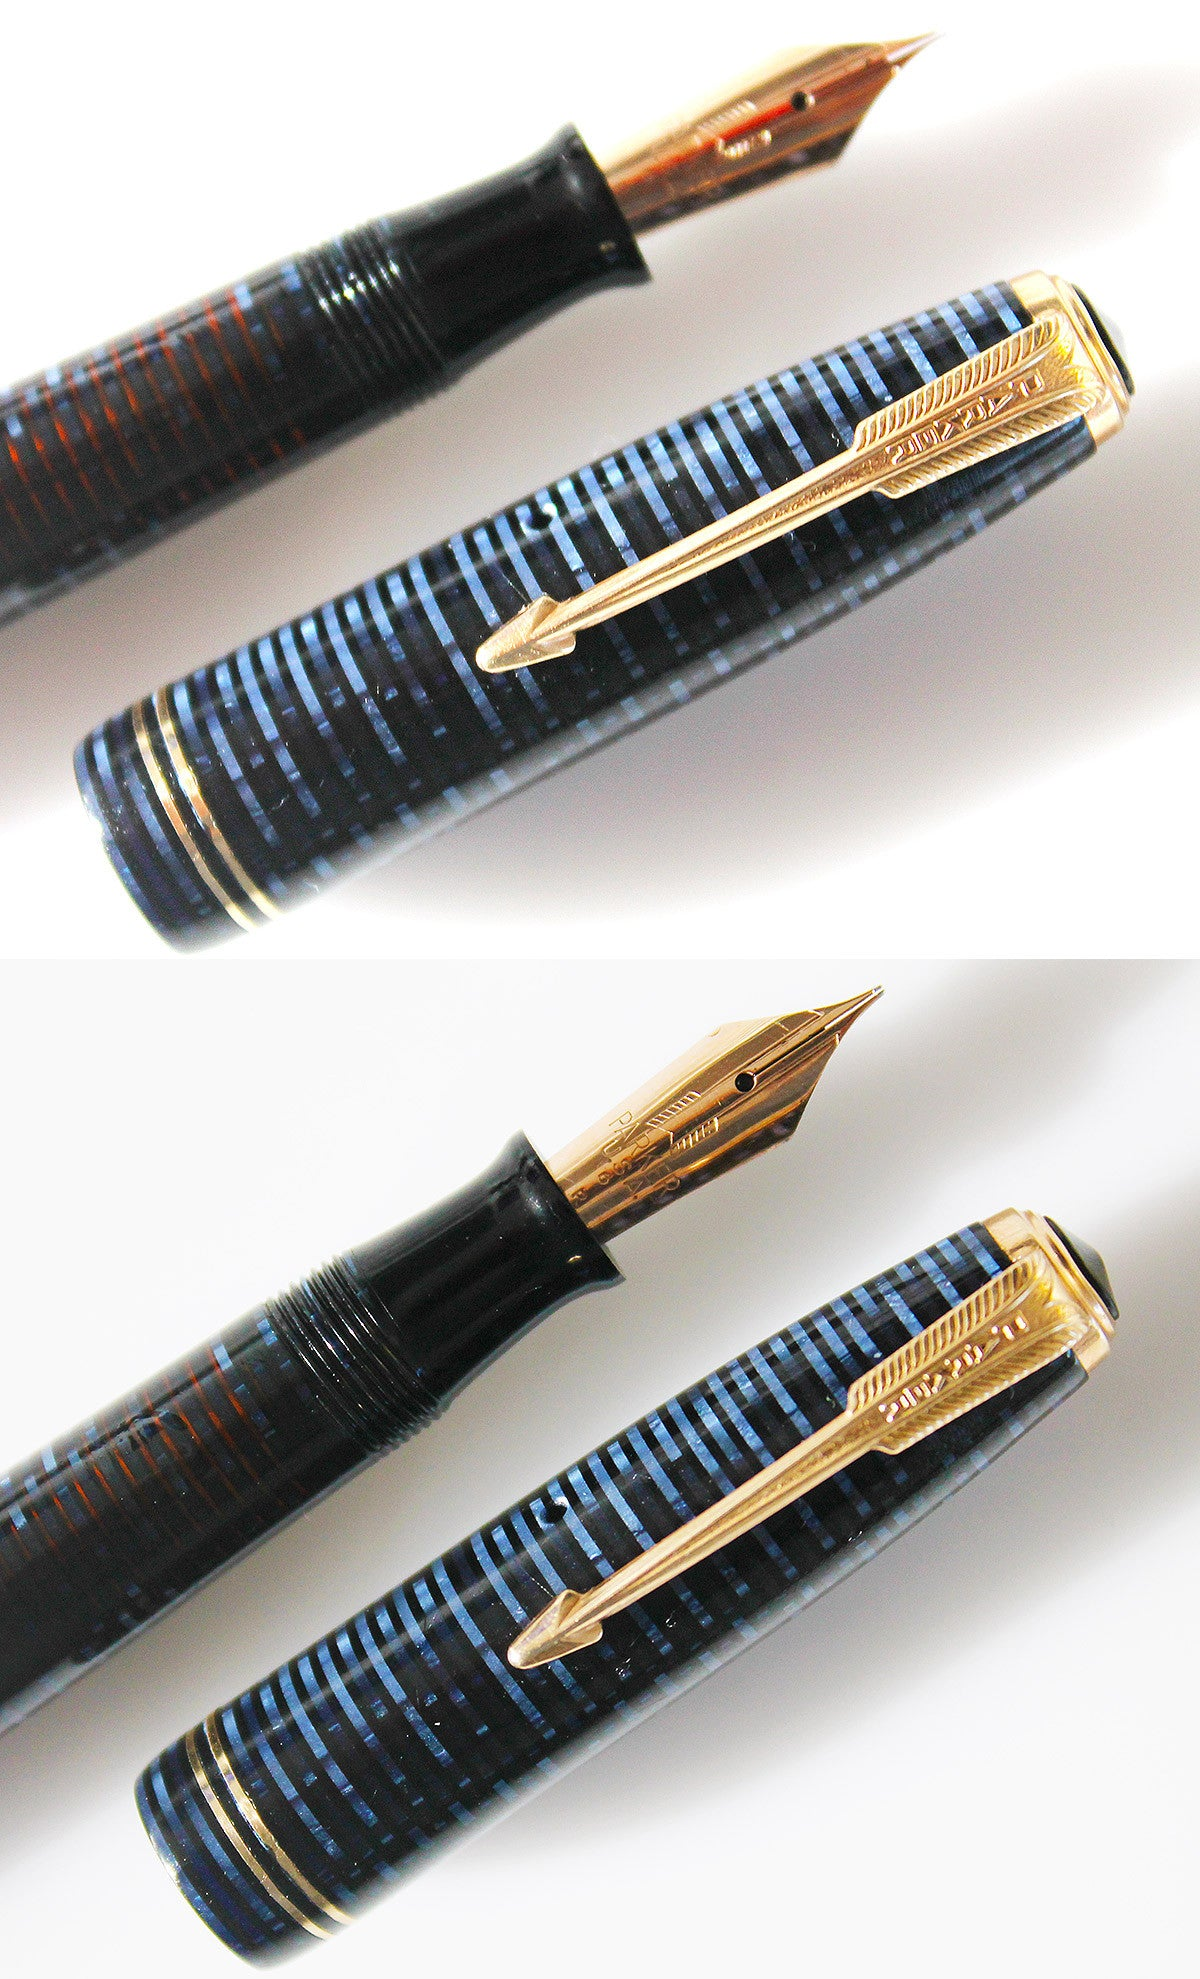 1946 PARKER AZURE CELLULOID VACUMATIC MAJOR FOUNTAIN PEN